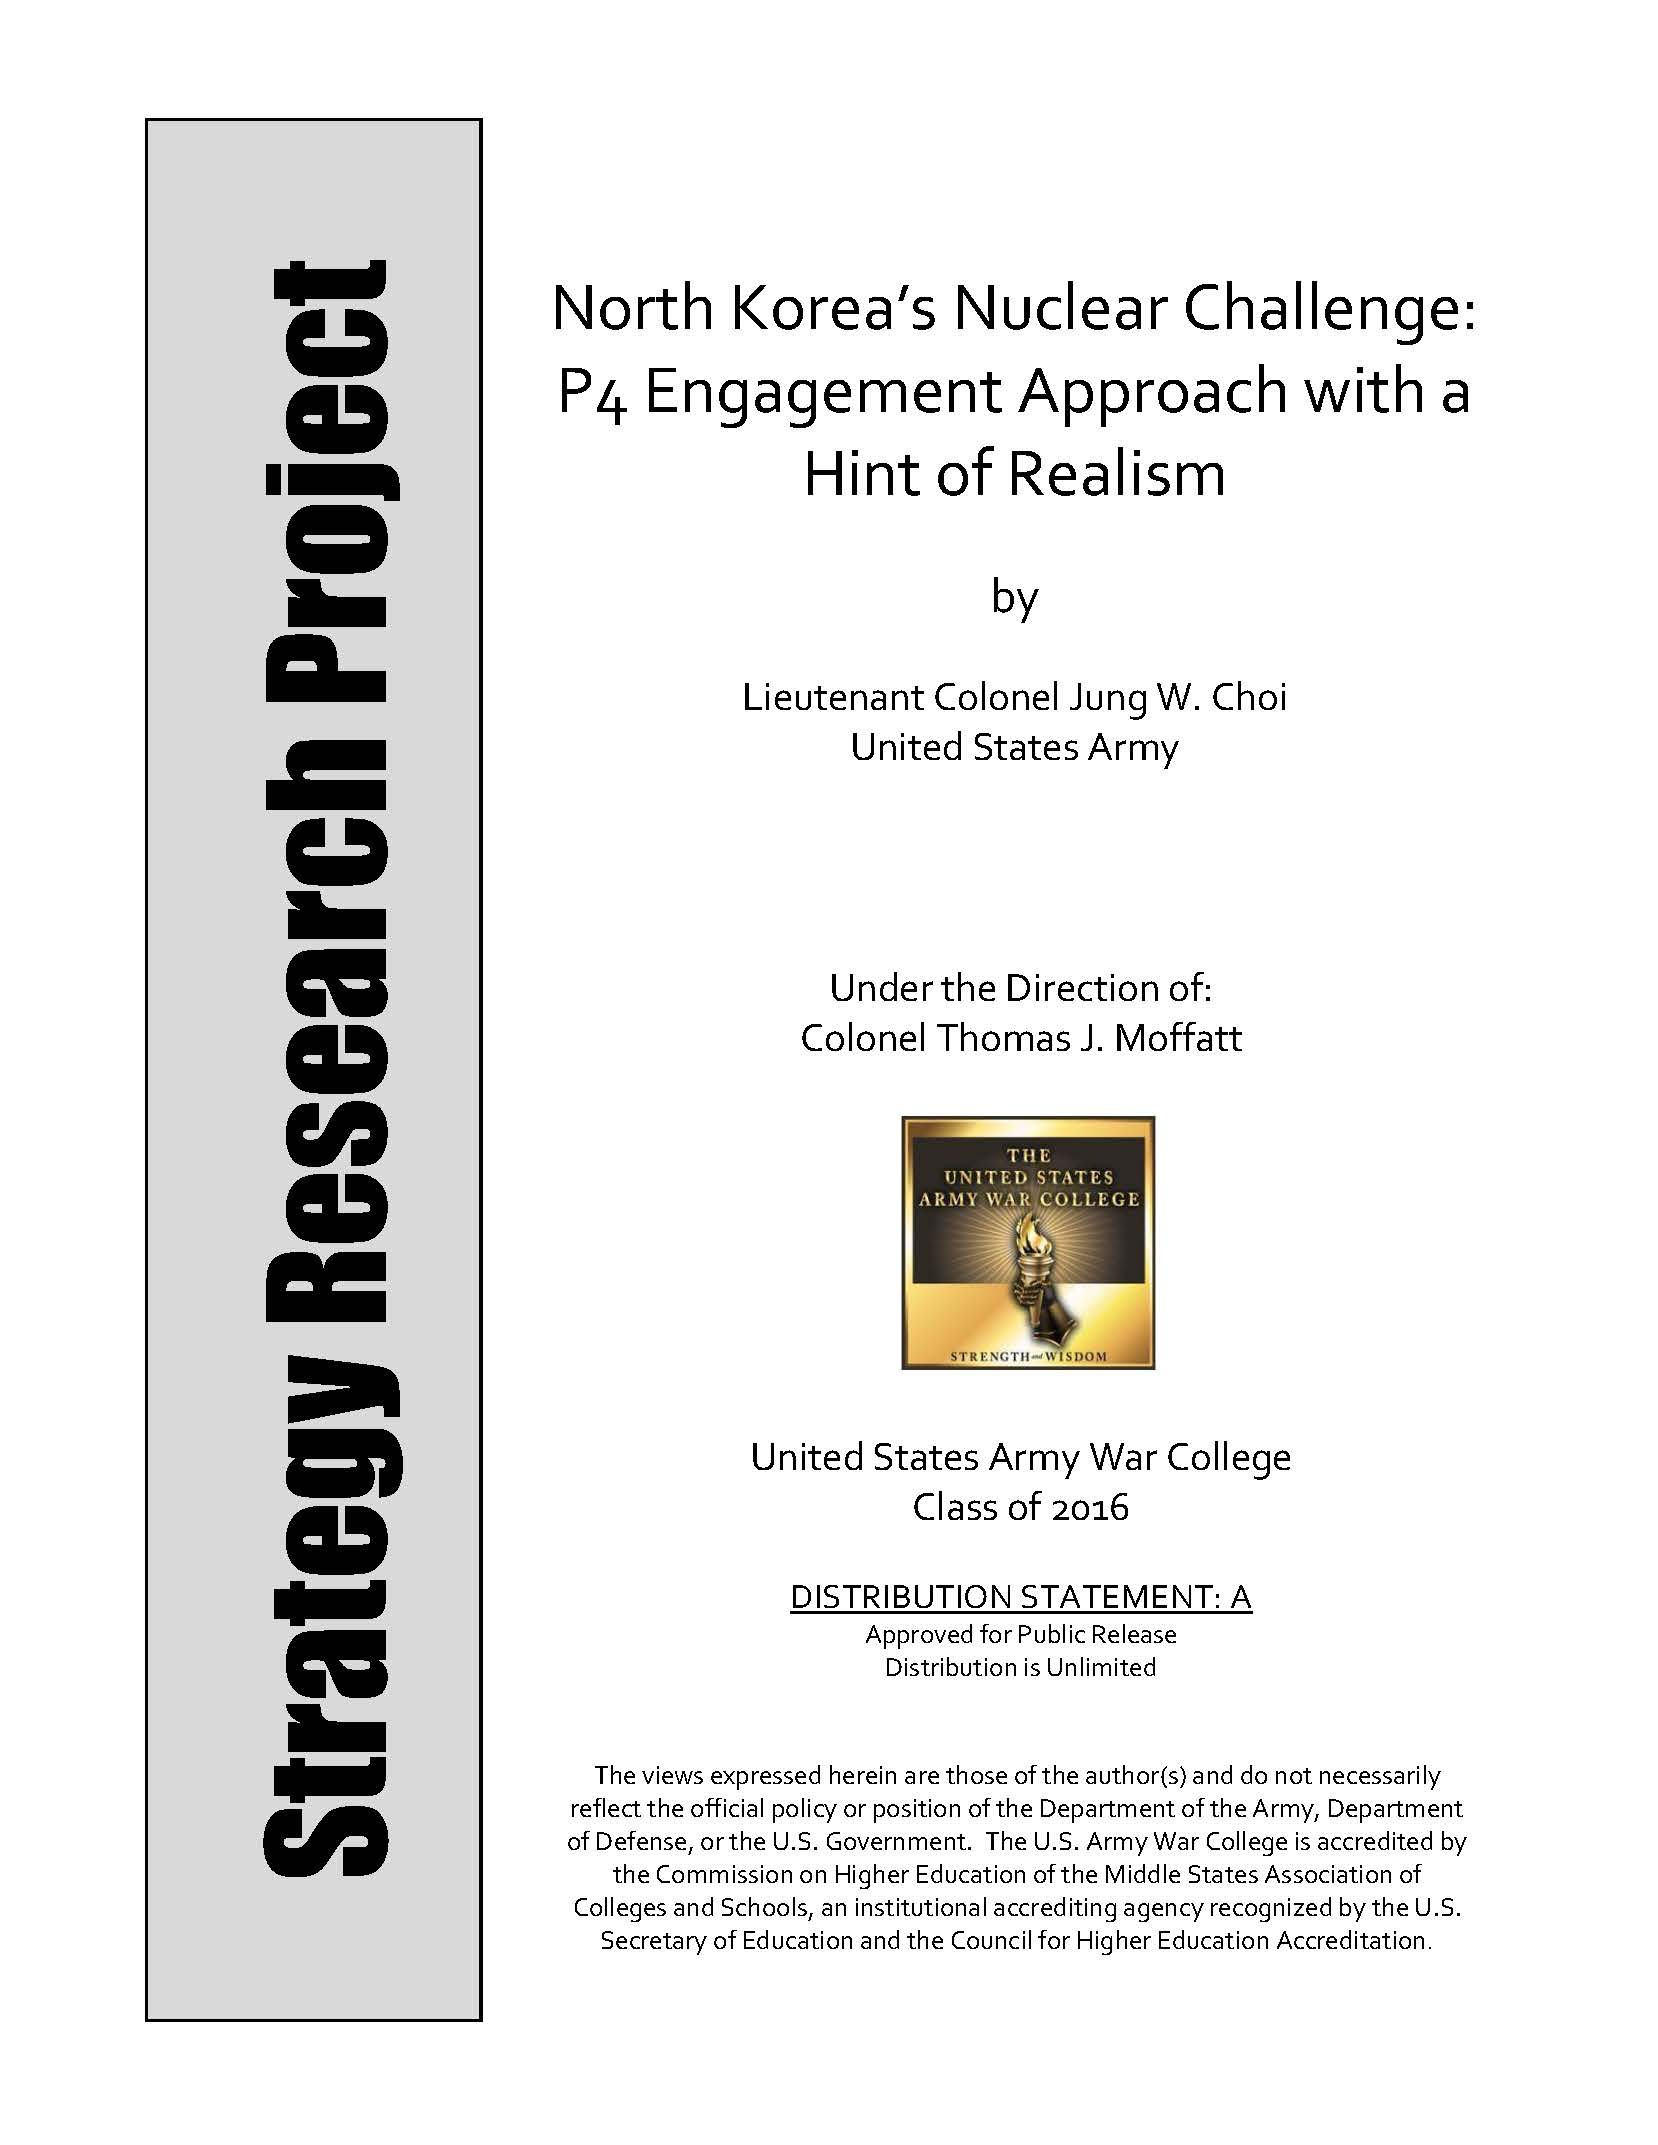 North Korea's Nuclear Challenge: P4 Engagement Approach with a Hint of Realism